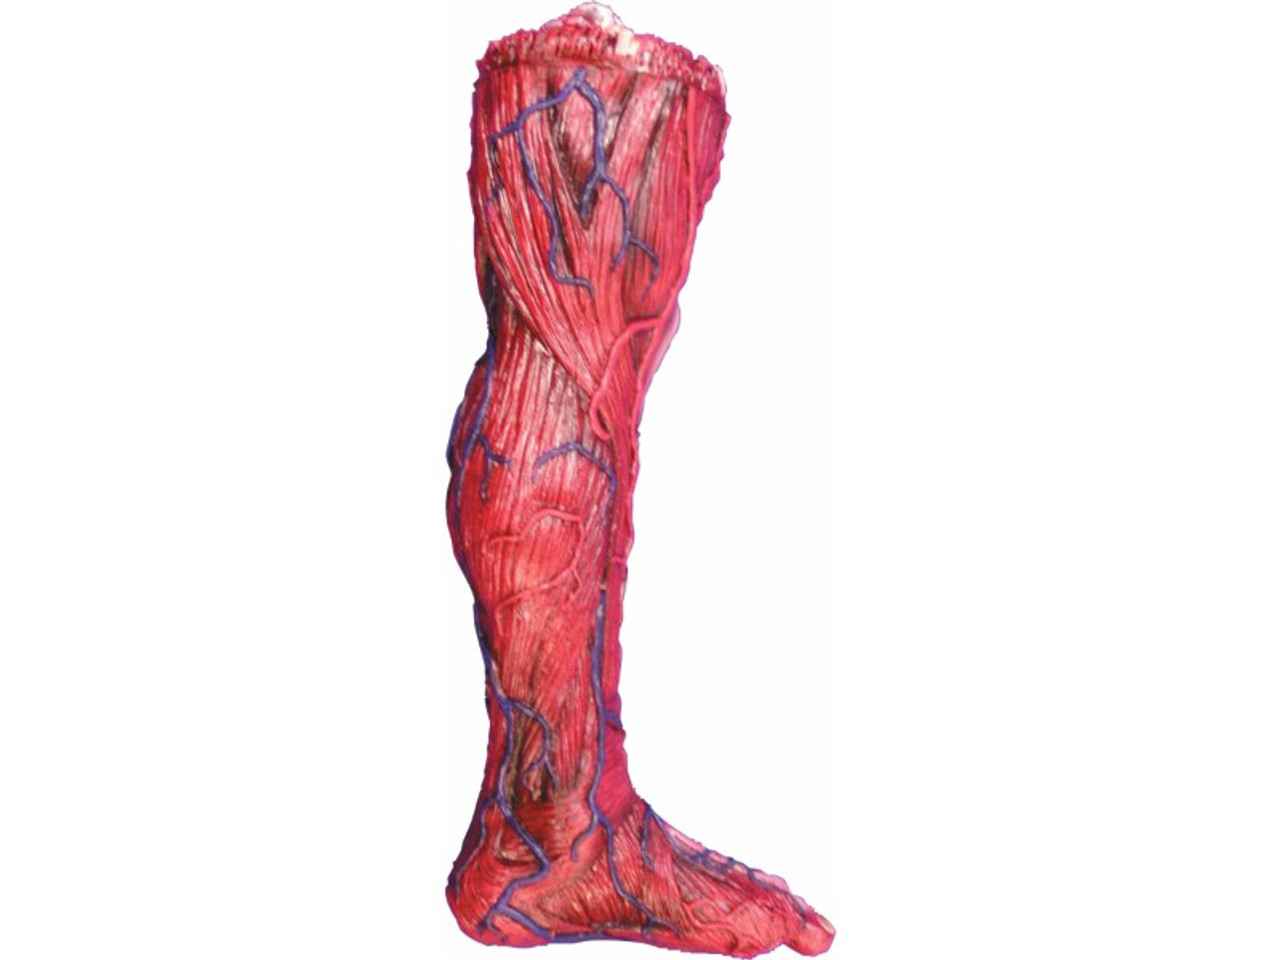 Severed Leg Prop | See Muscle Tissue Veins | House Of Hauntz